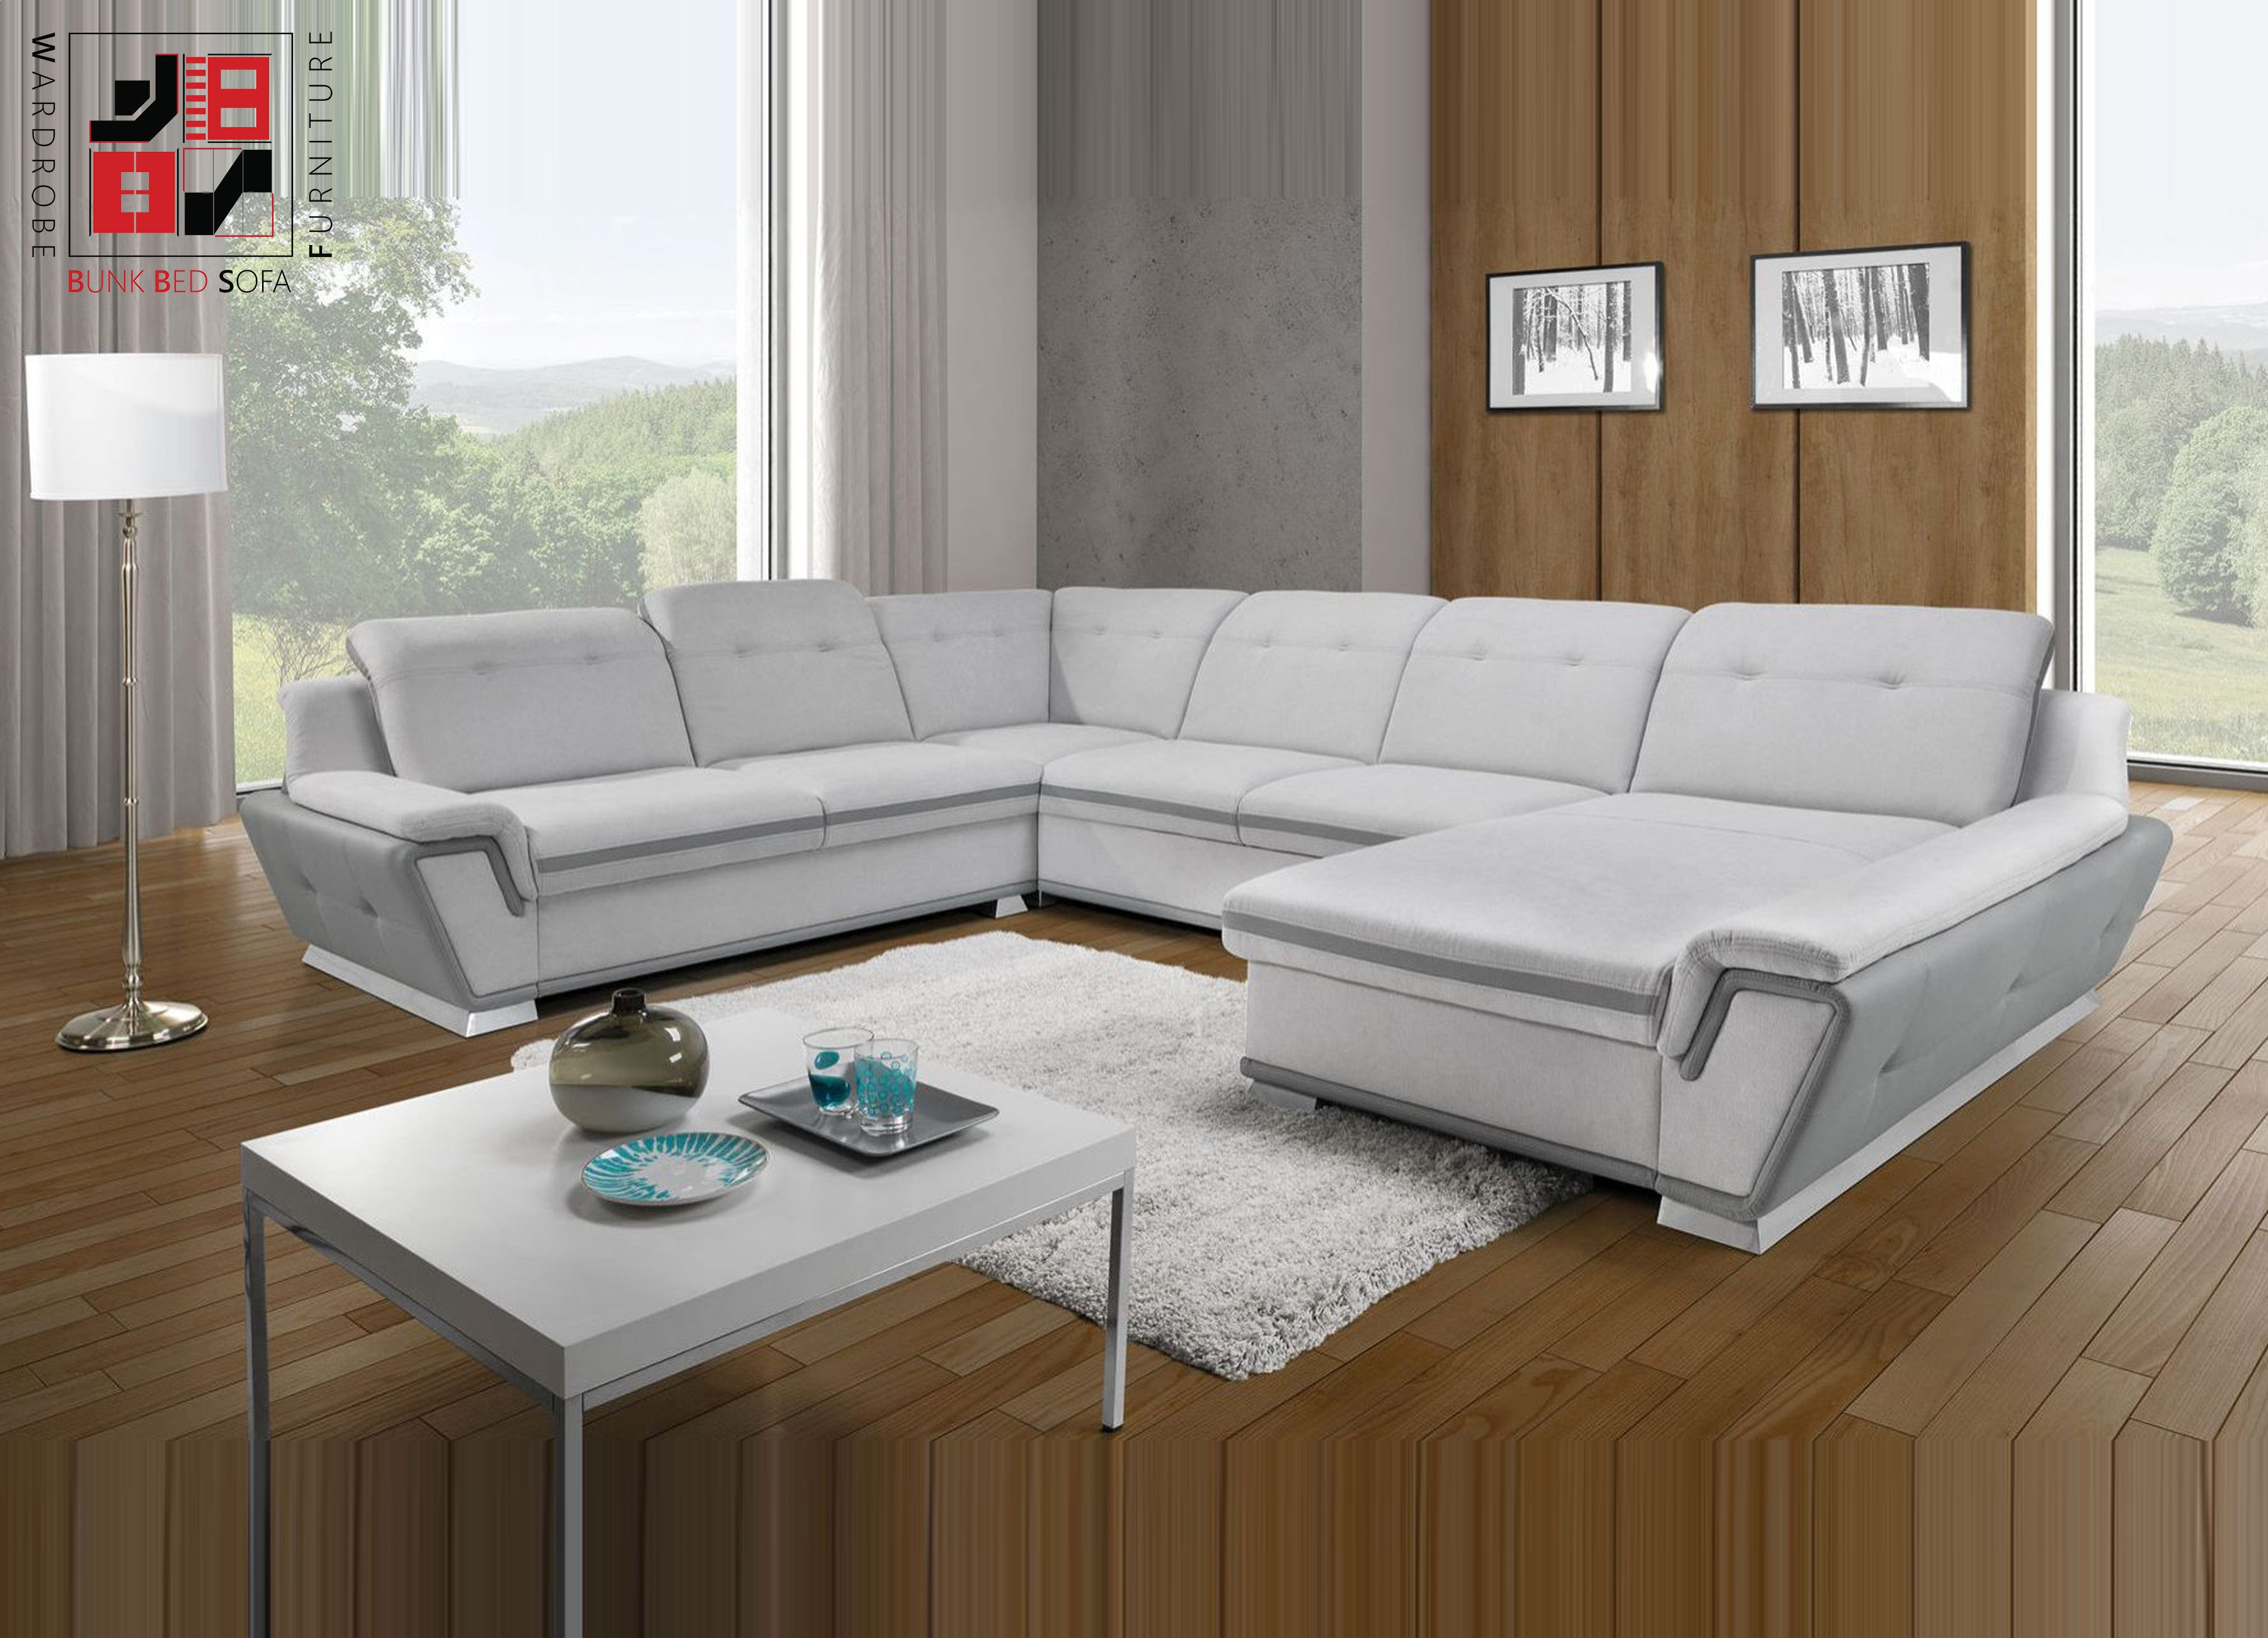 ISELLE XL U shape sofa bed which increase your confidence &gt